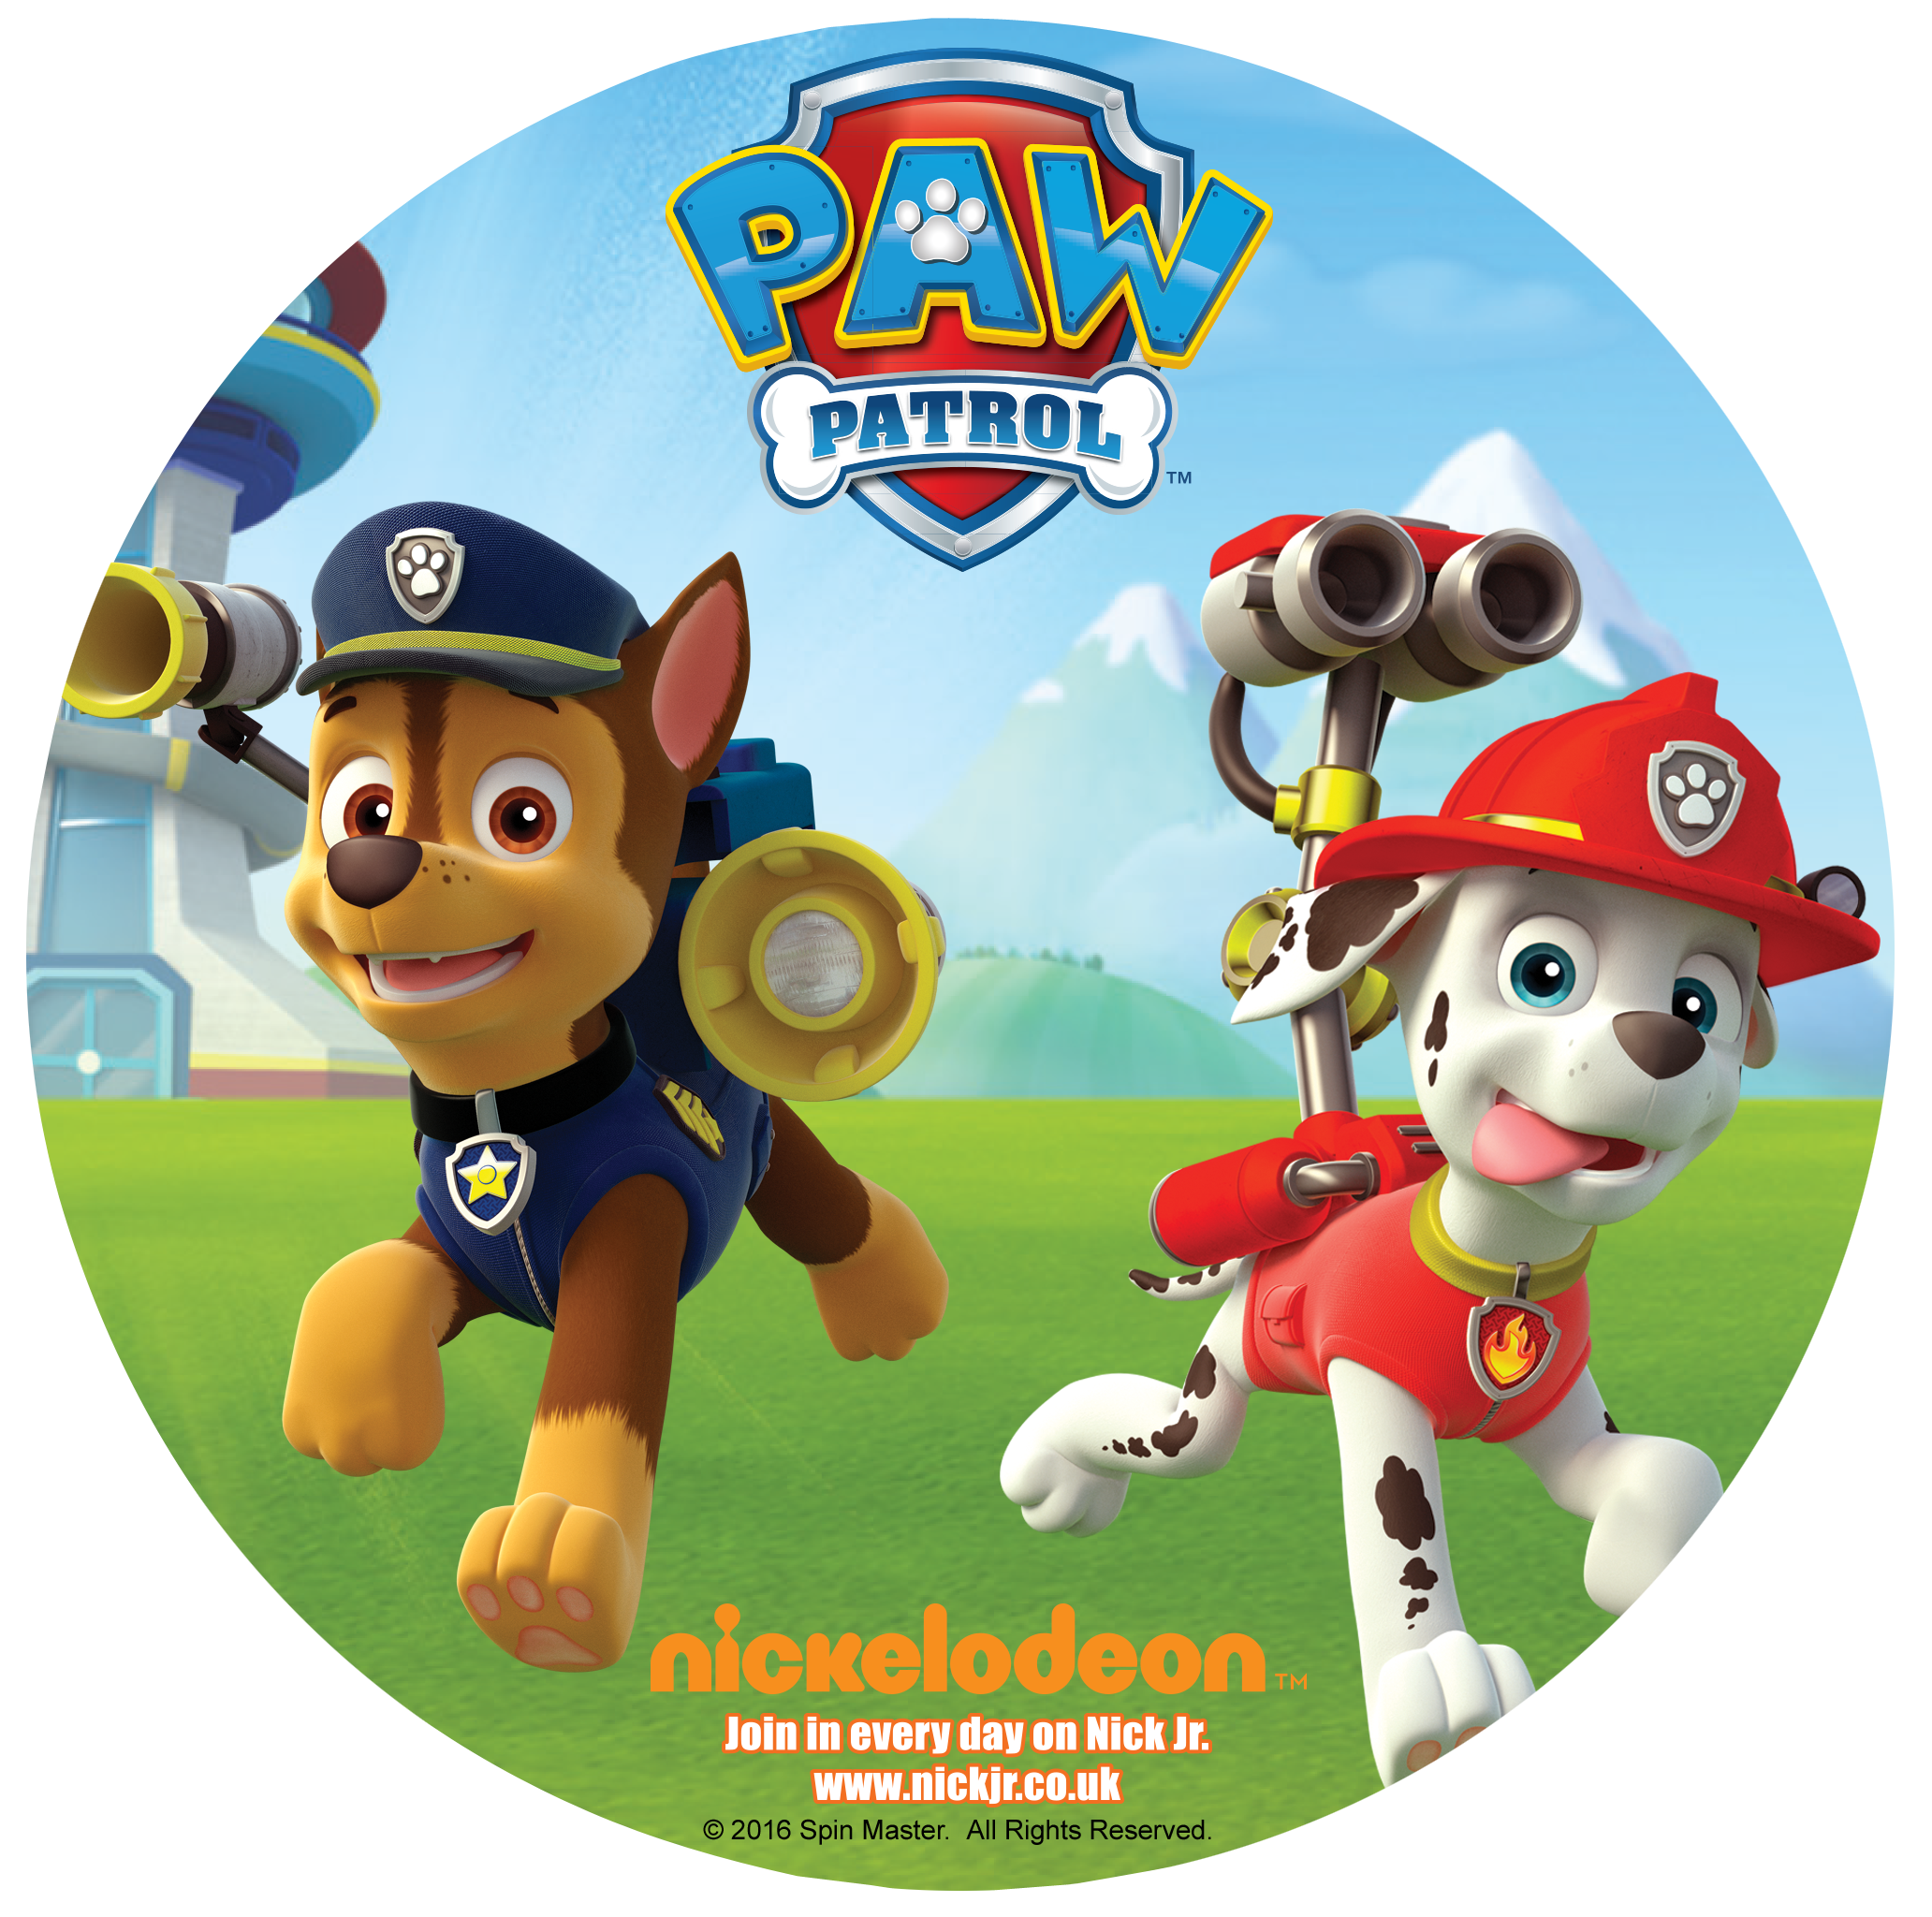 Chase paw patrol png. Marshall from set to